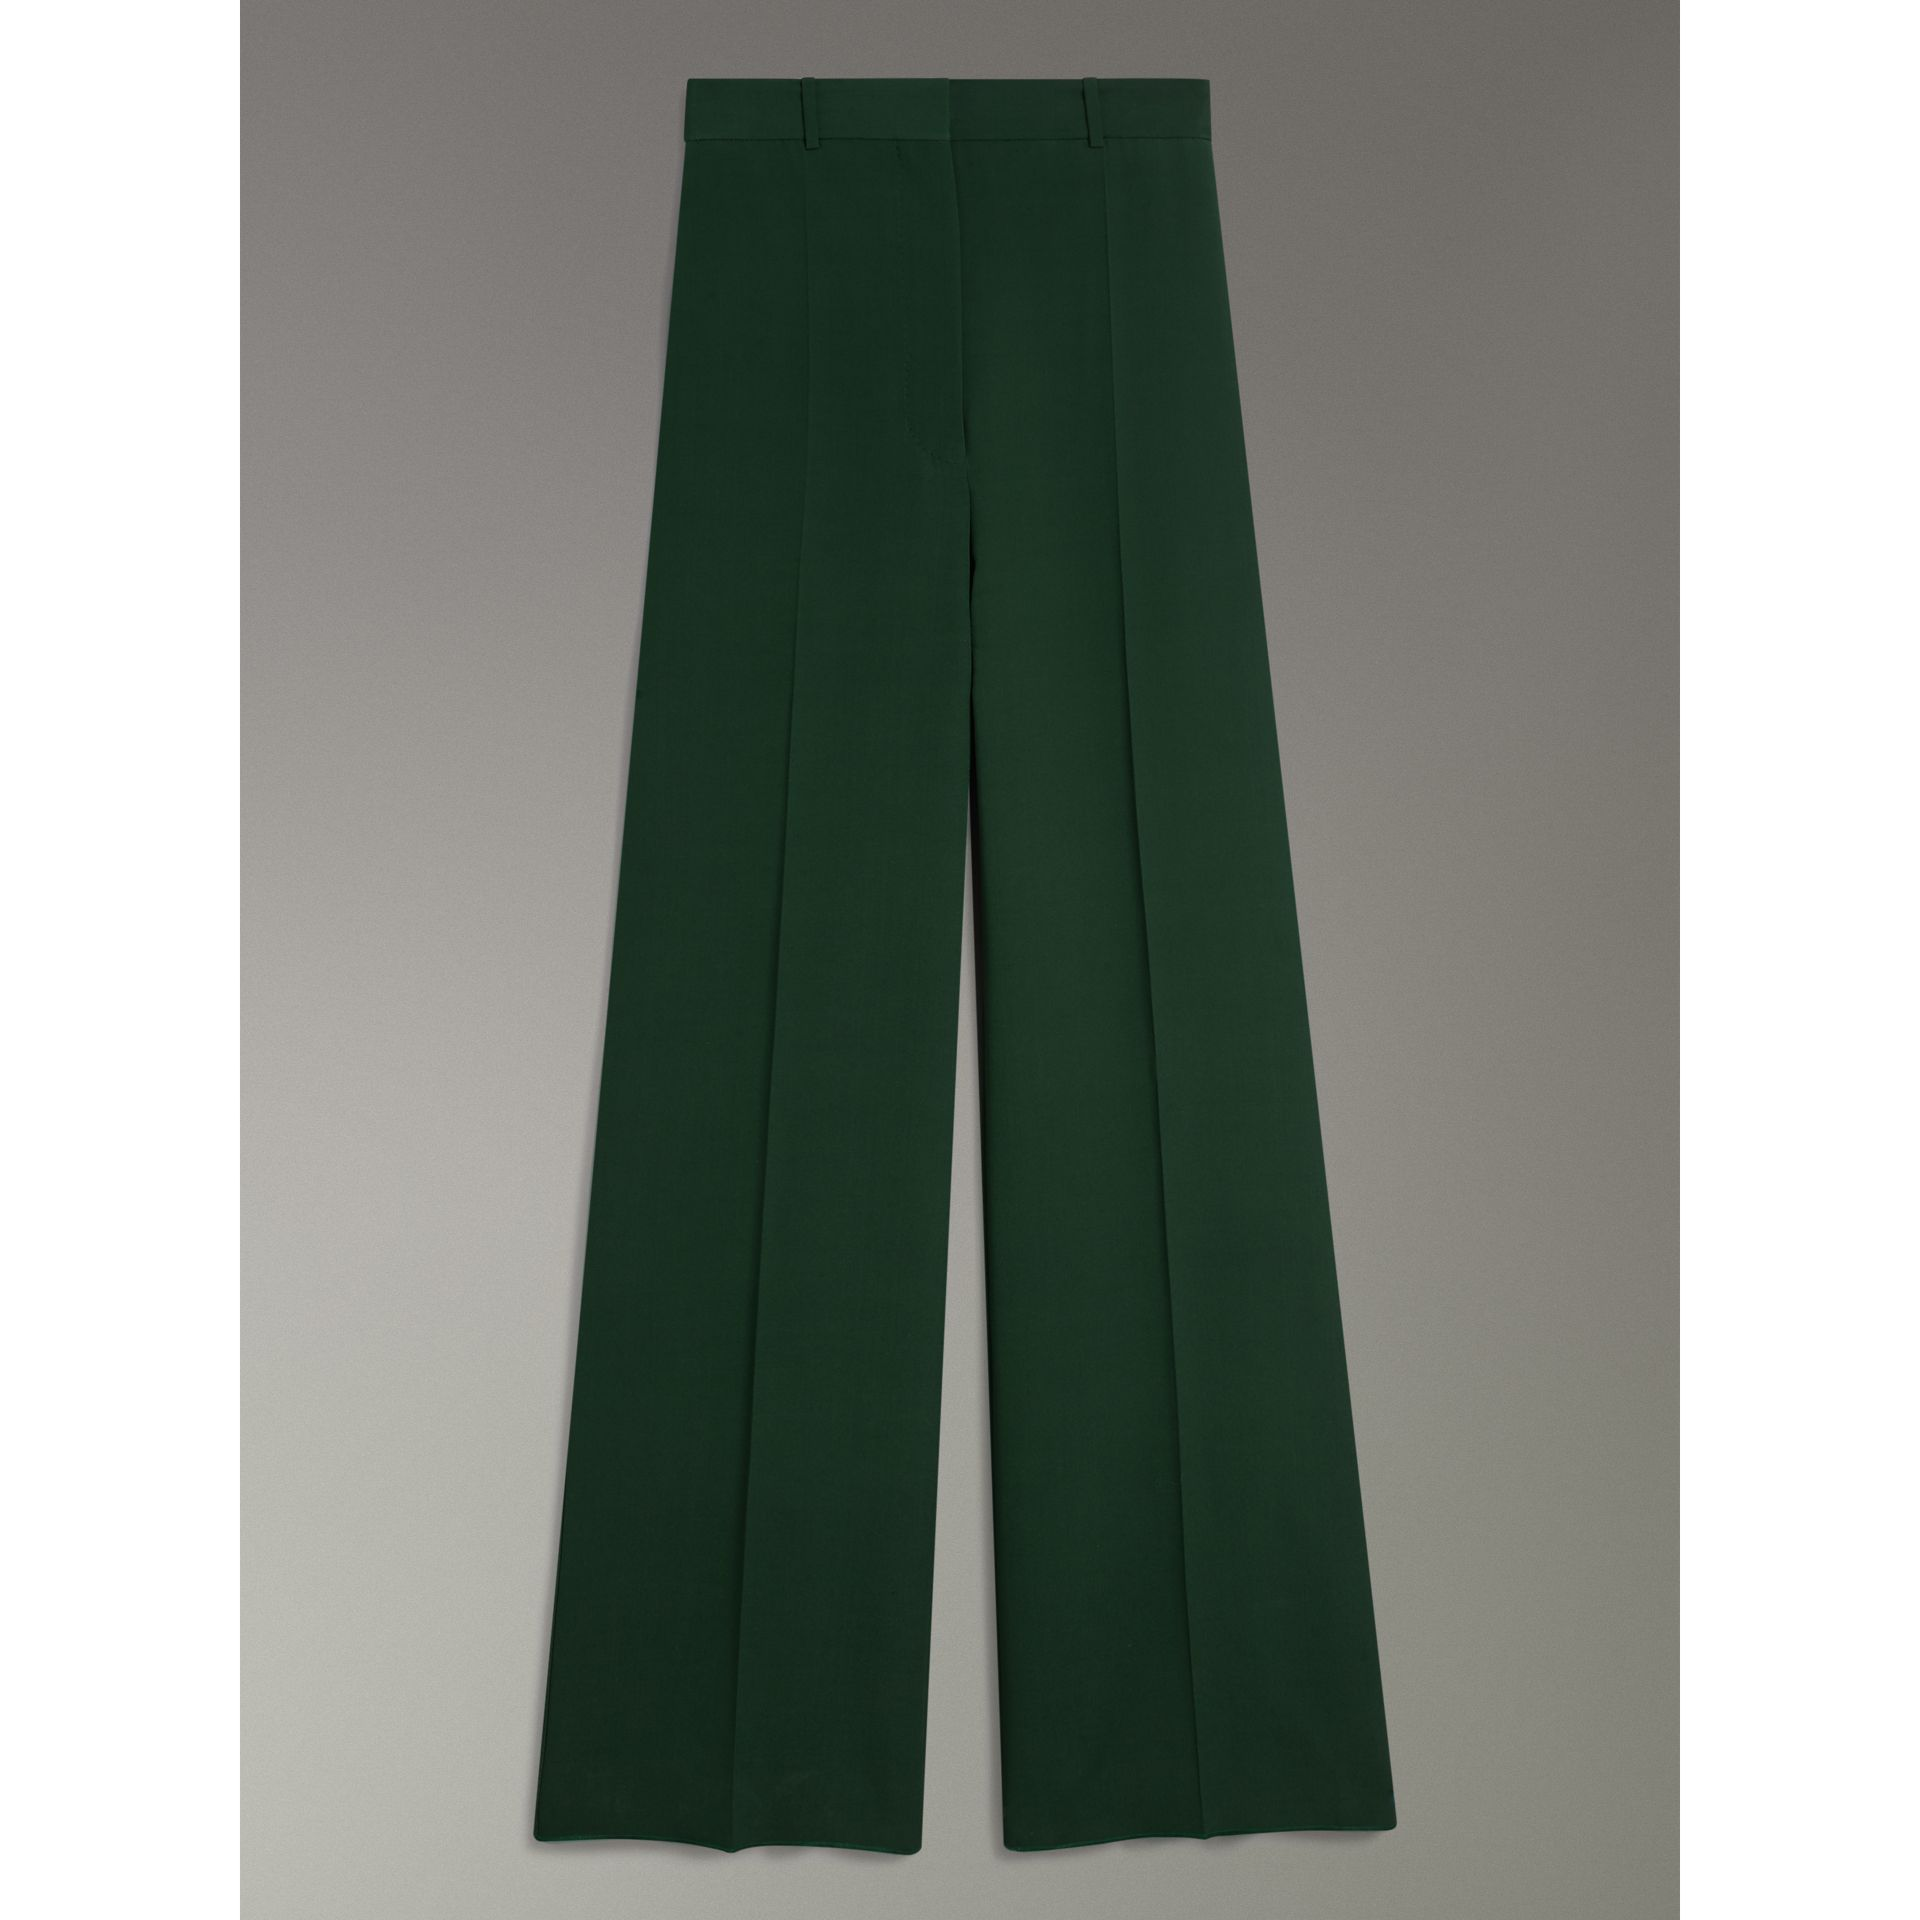 Silk Wool High-waisted Trousers in Dark Forest Green - Women | Burberry - gallery image 3